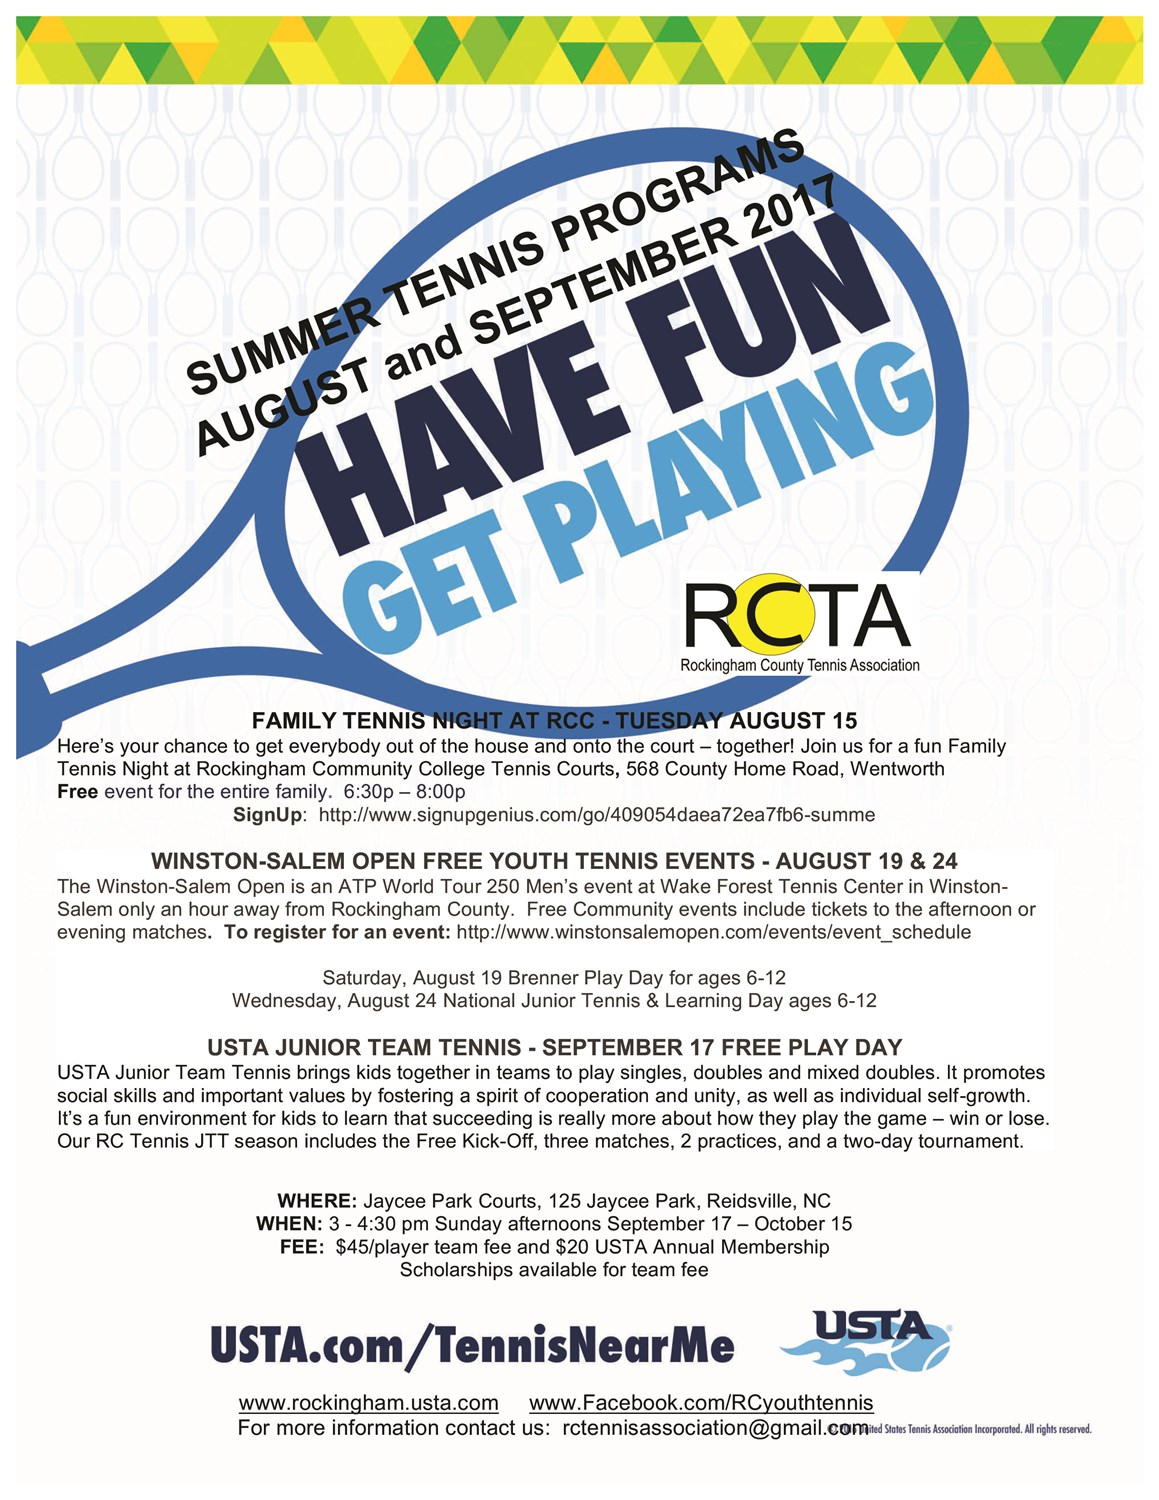 RC_Tennis_August_September_2017_Program_flyer-1-page-0